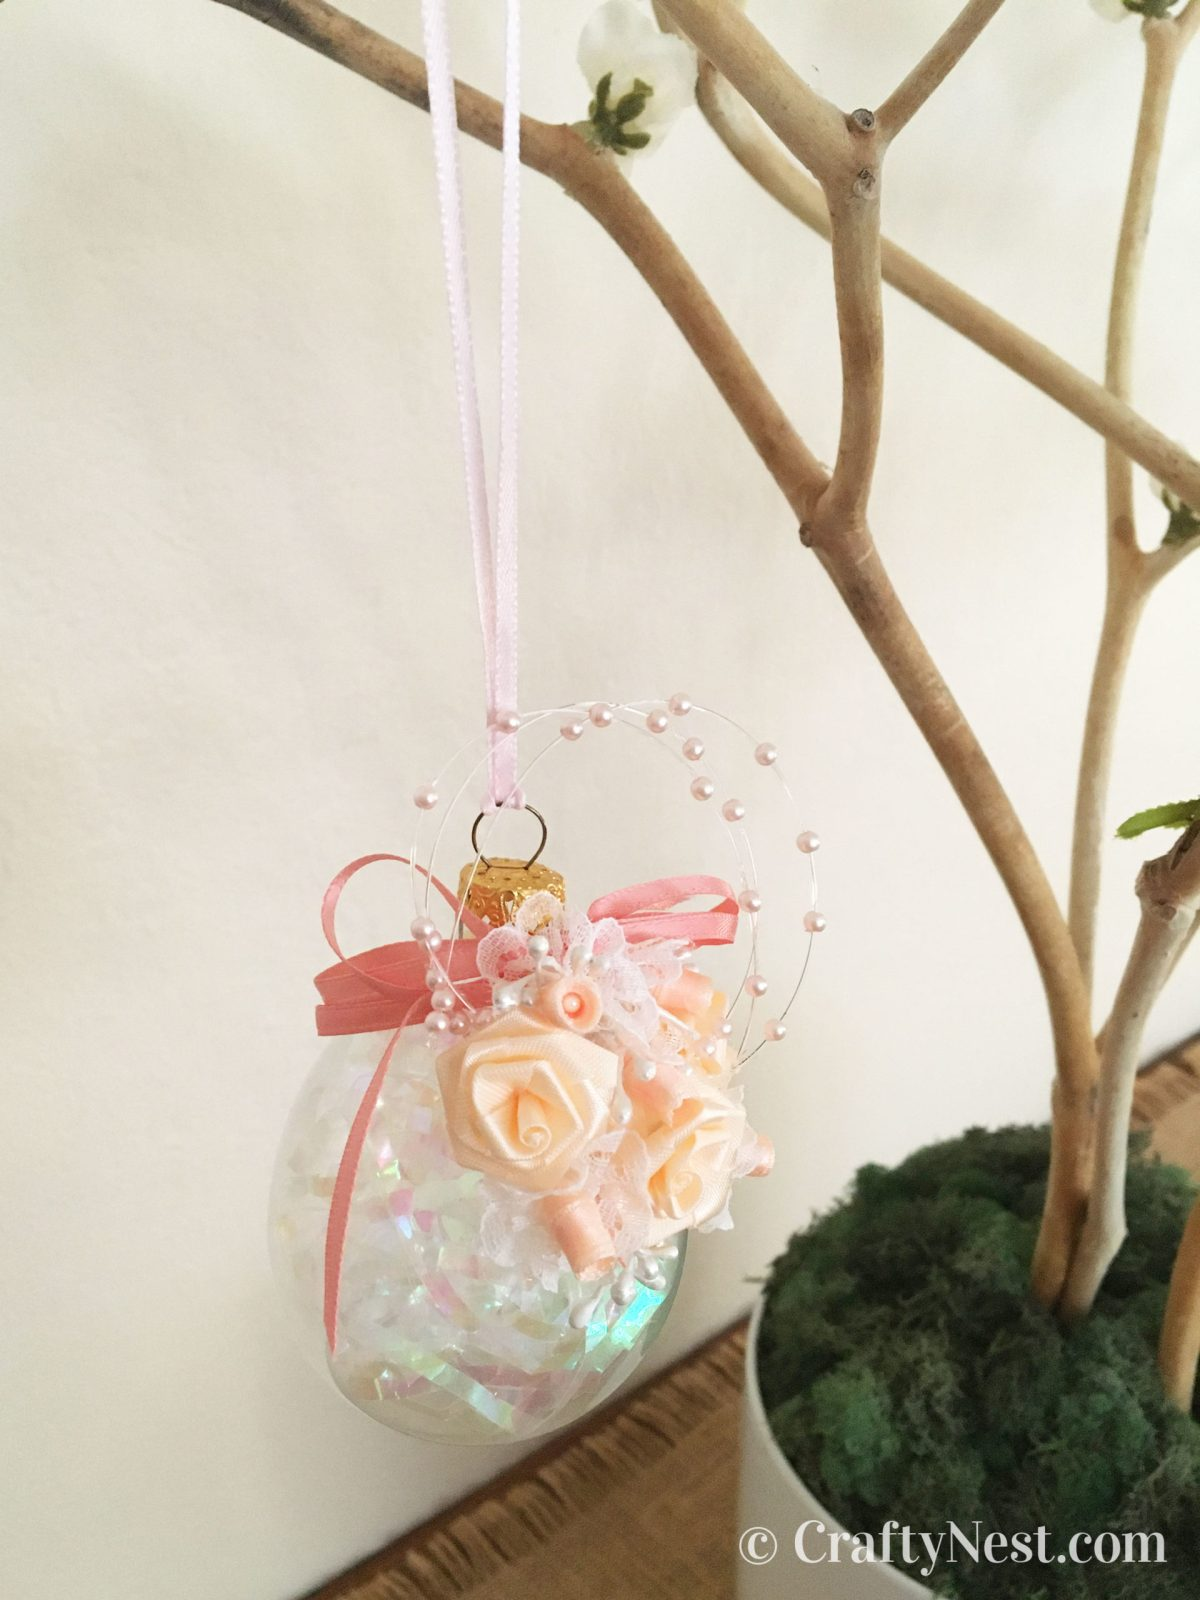 Close up of an Easter egg ornament, photo